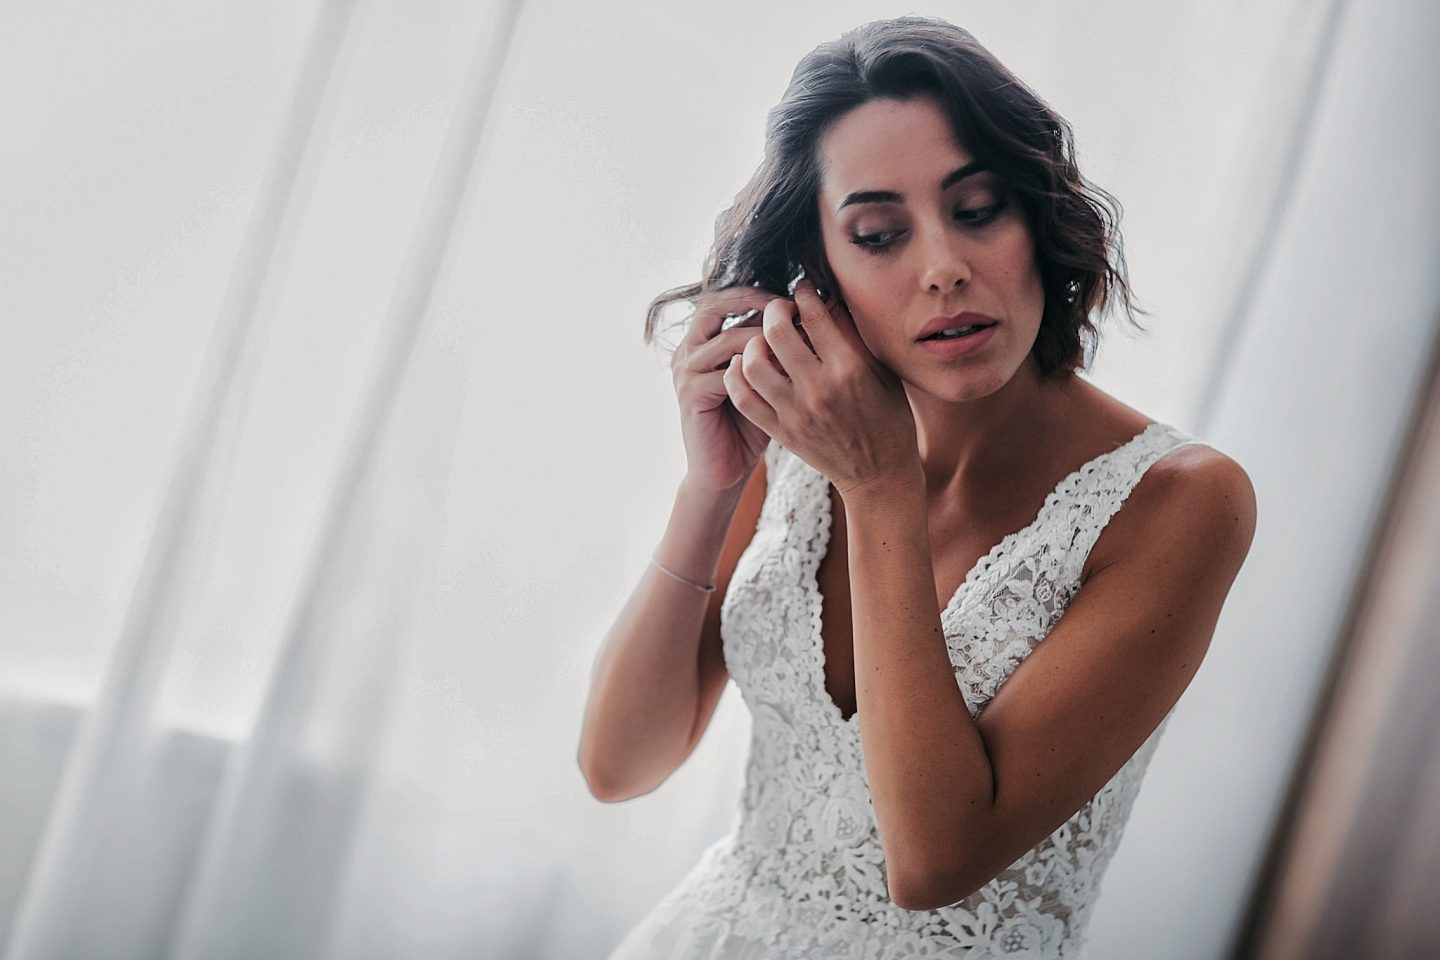 Bridal Stylist - Lisa Campolunghi